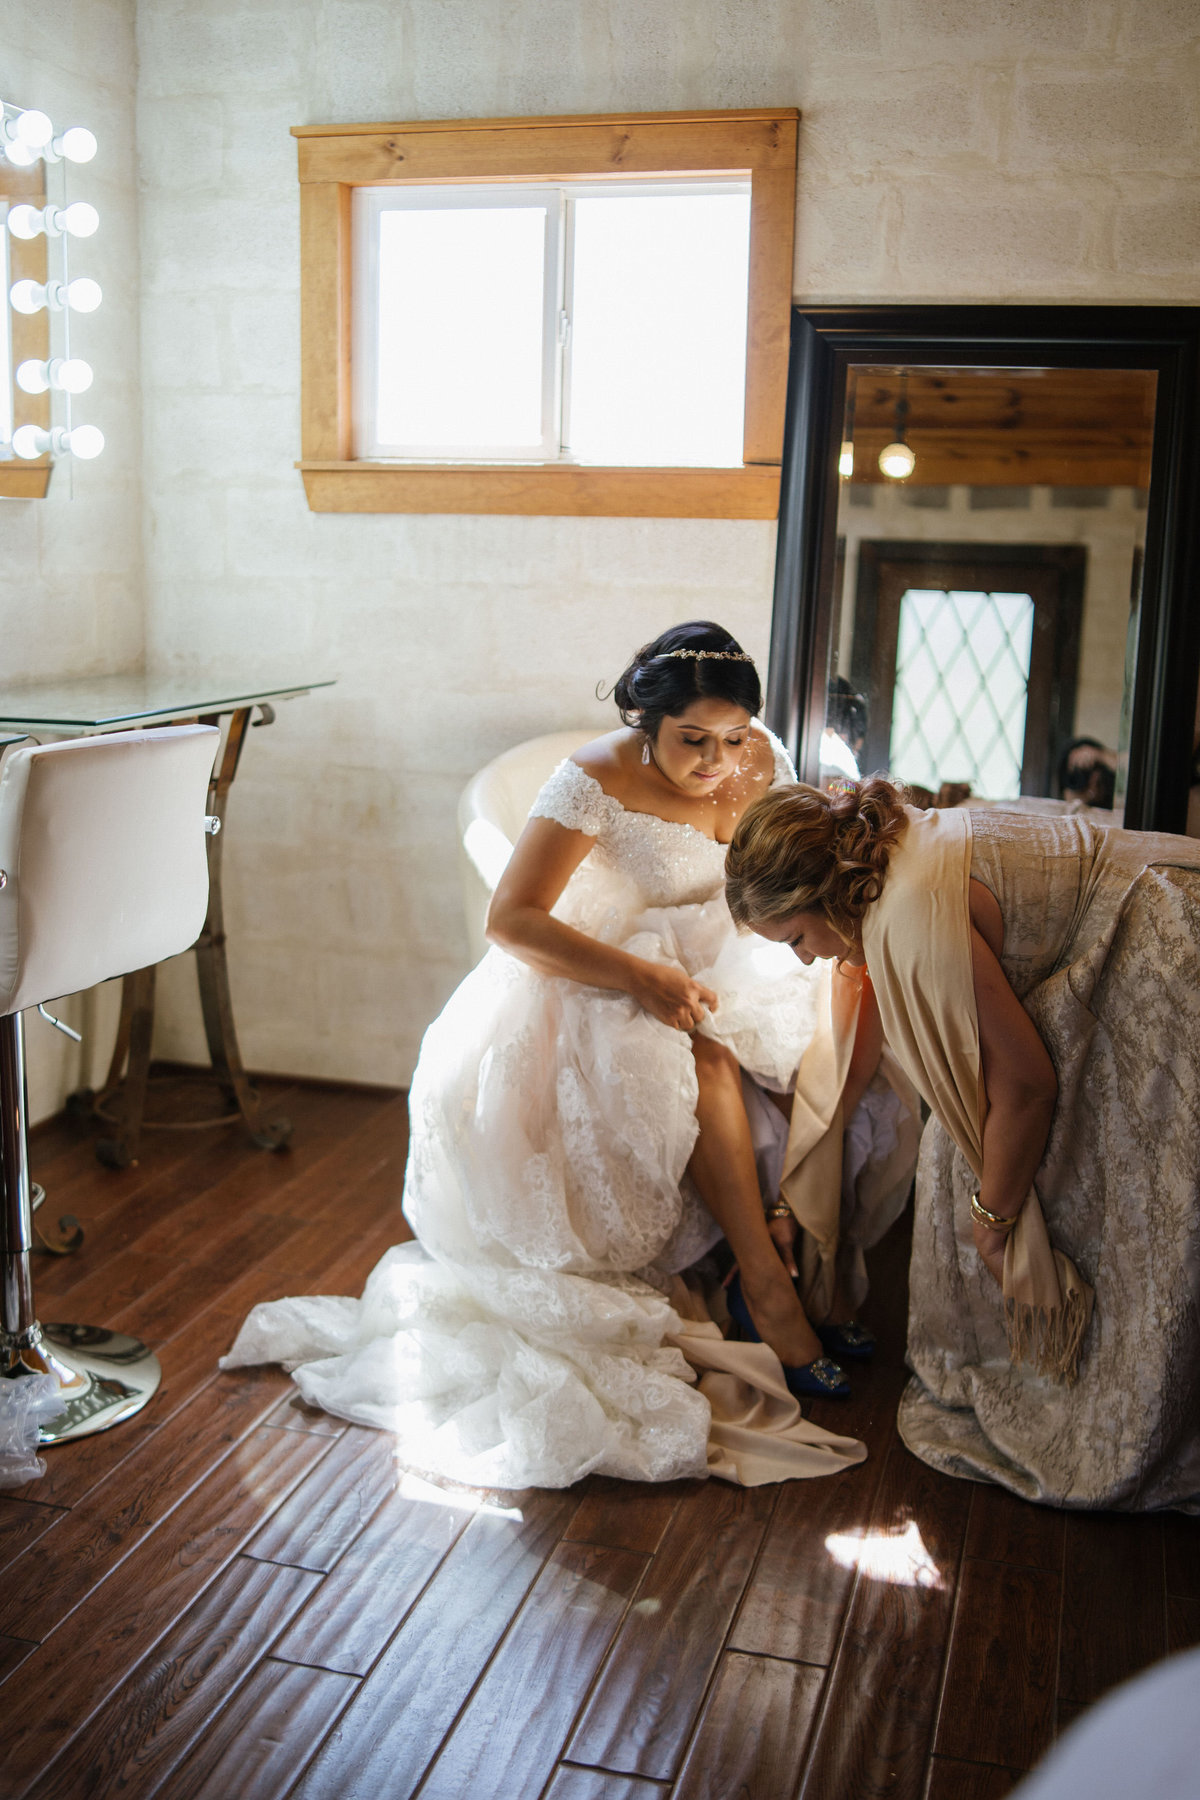 Mother of bride helping daughter put on her wedding shoes during getting ready for ceremony at Oaks of Heavenly venue